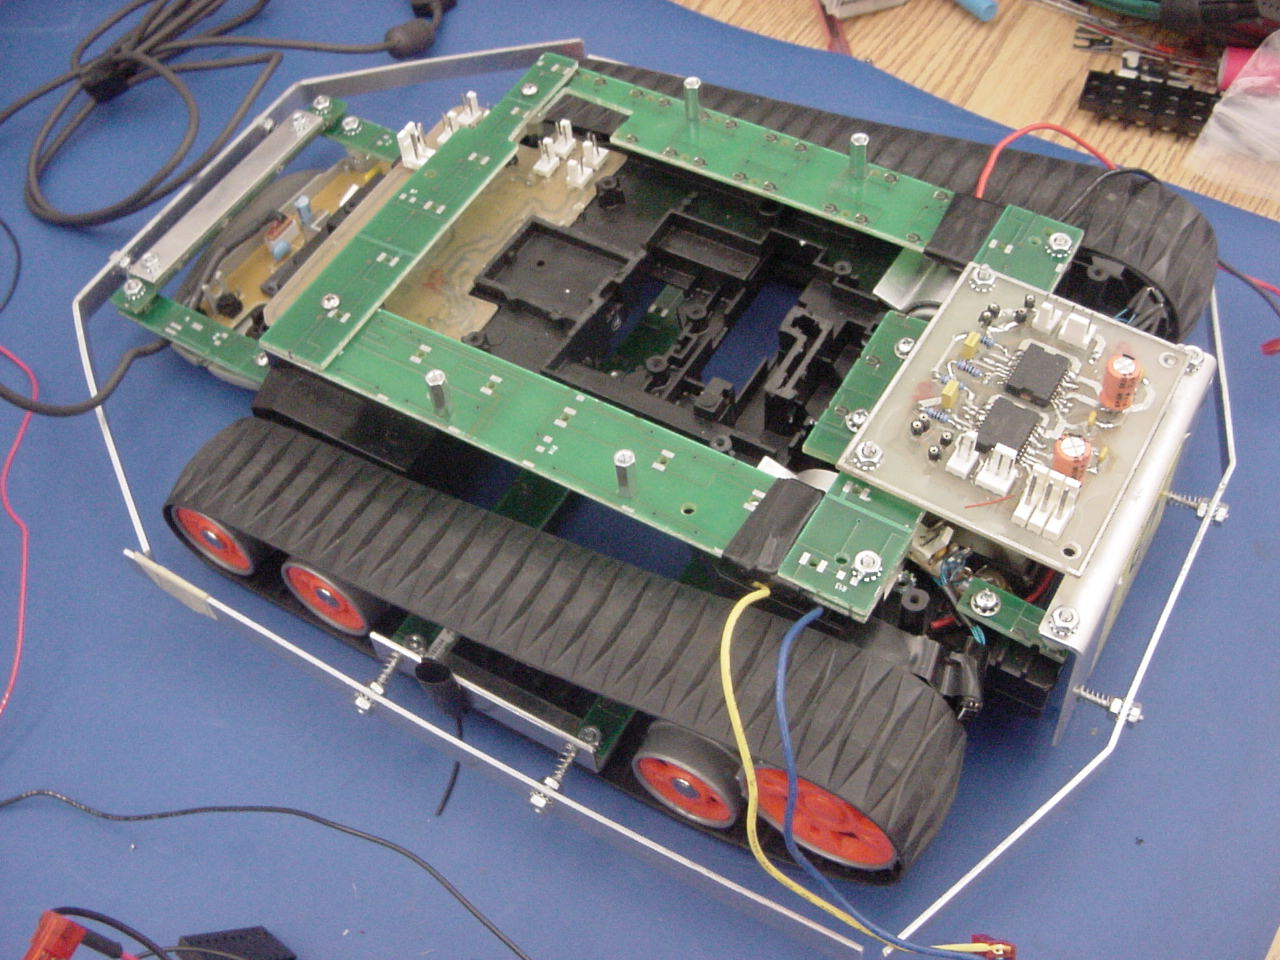 Robot Pictures4 Optical Mouse Circuit Board Picture Is The Microsoft Notice Beneath H Bridge Pcb There A Plate To Keep Gears In Place Original R C Car This Was Done By